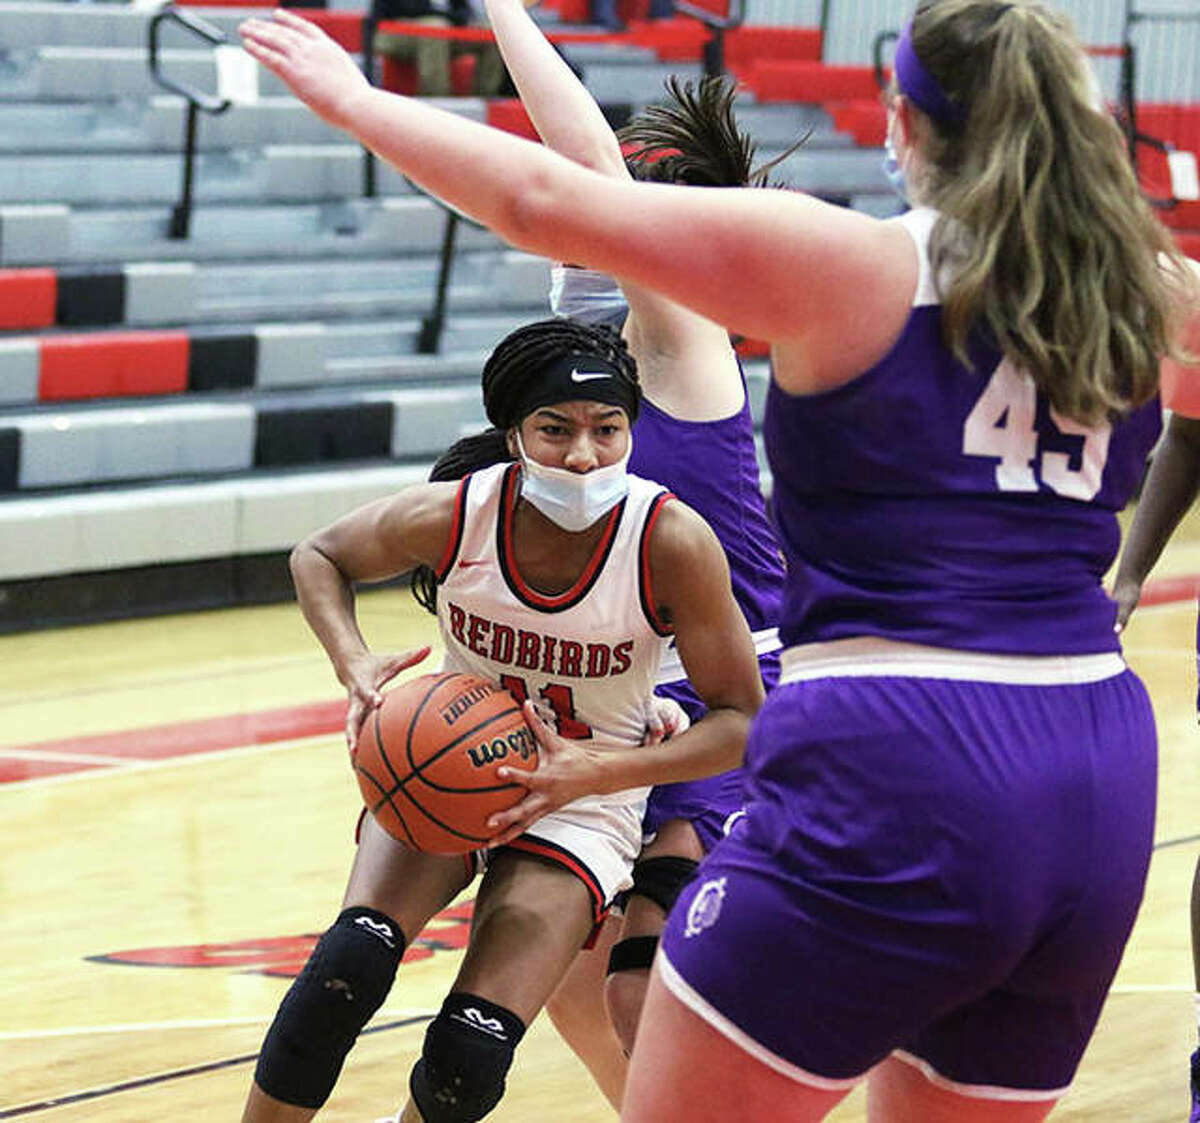 Alton's Renee Raglin (left) takes the ball to the basket against Collinsville defenders in a Feb. 23 SWC game at Alton High in Godfrey. On Thursday, Raglin scored 13 points to lead the Redbirds in a season-ending loss at Belleville West in the SWC Tourney.